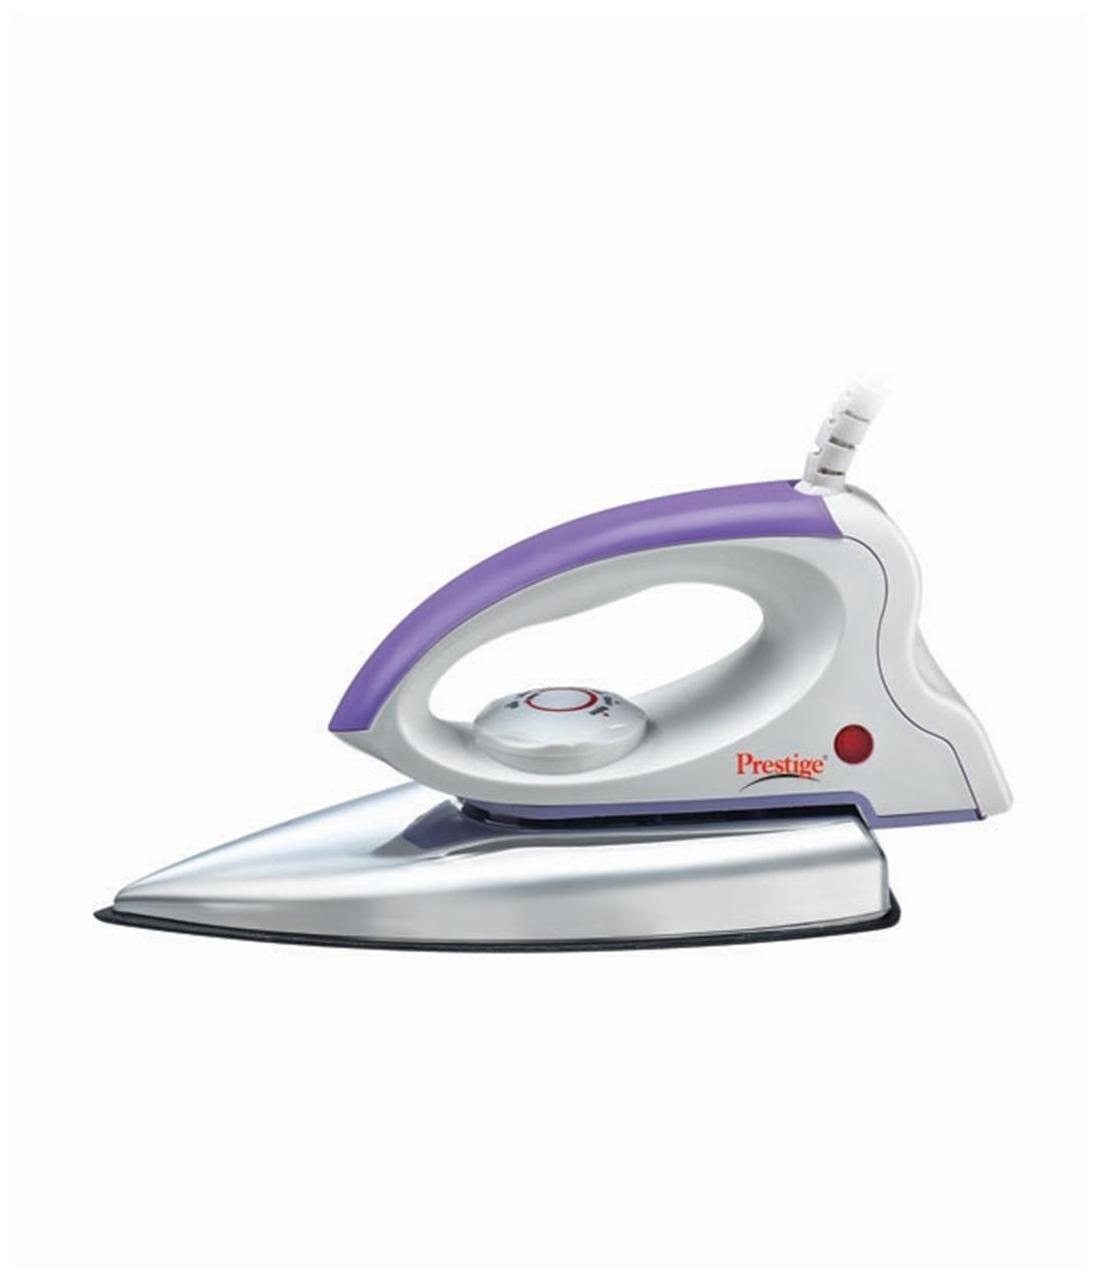 Prestige PDI 03 750 W Dry Iron (White & Purple)